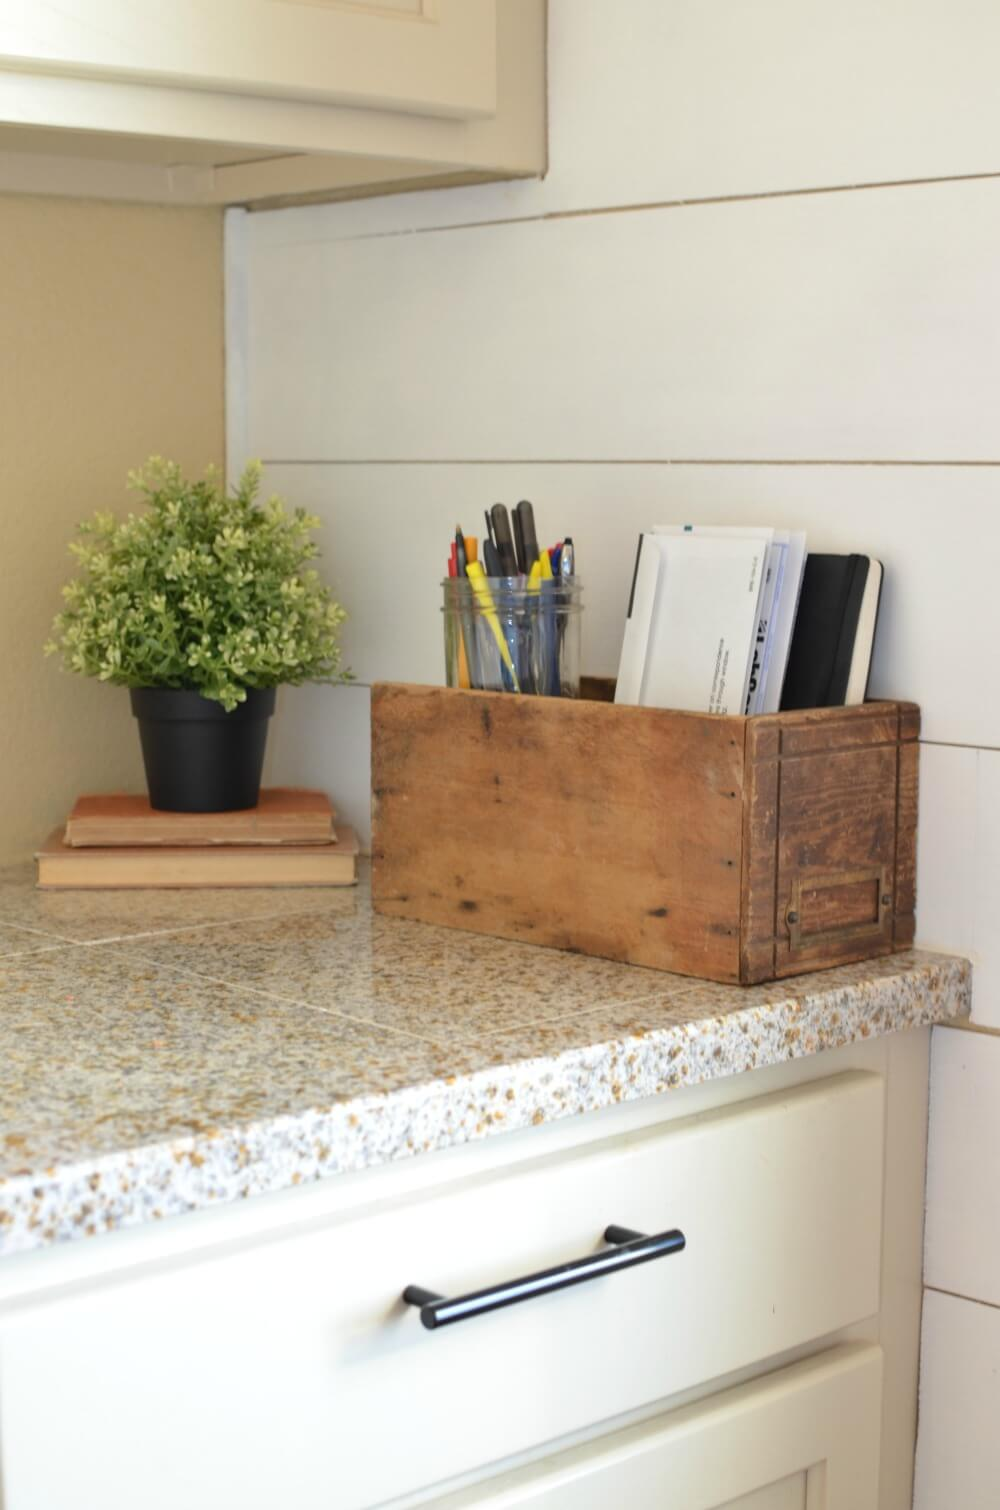 Kitchen Countertop Organizing Idea for Notes